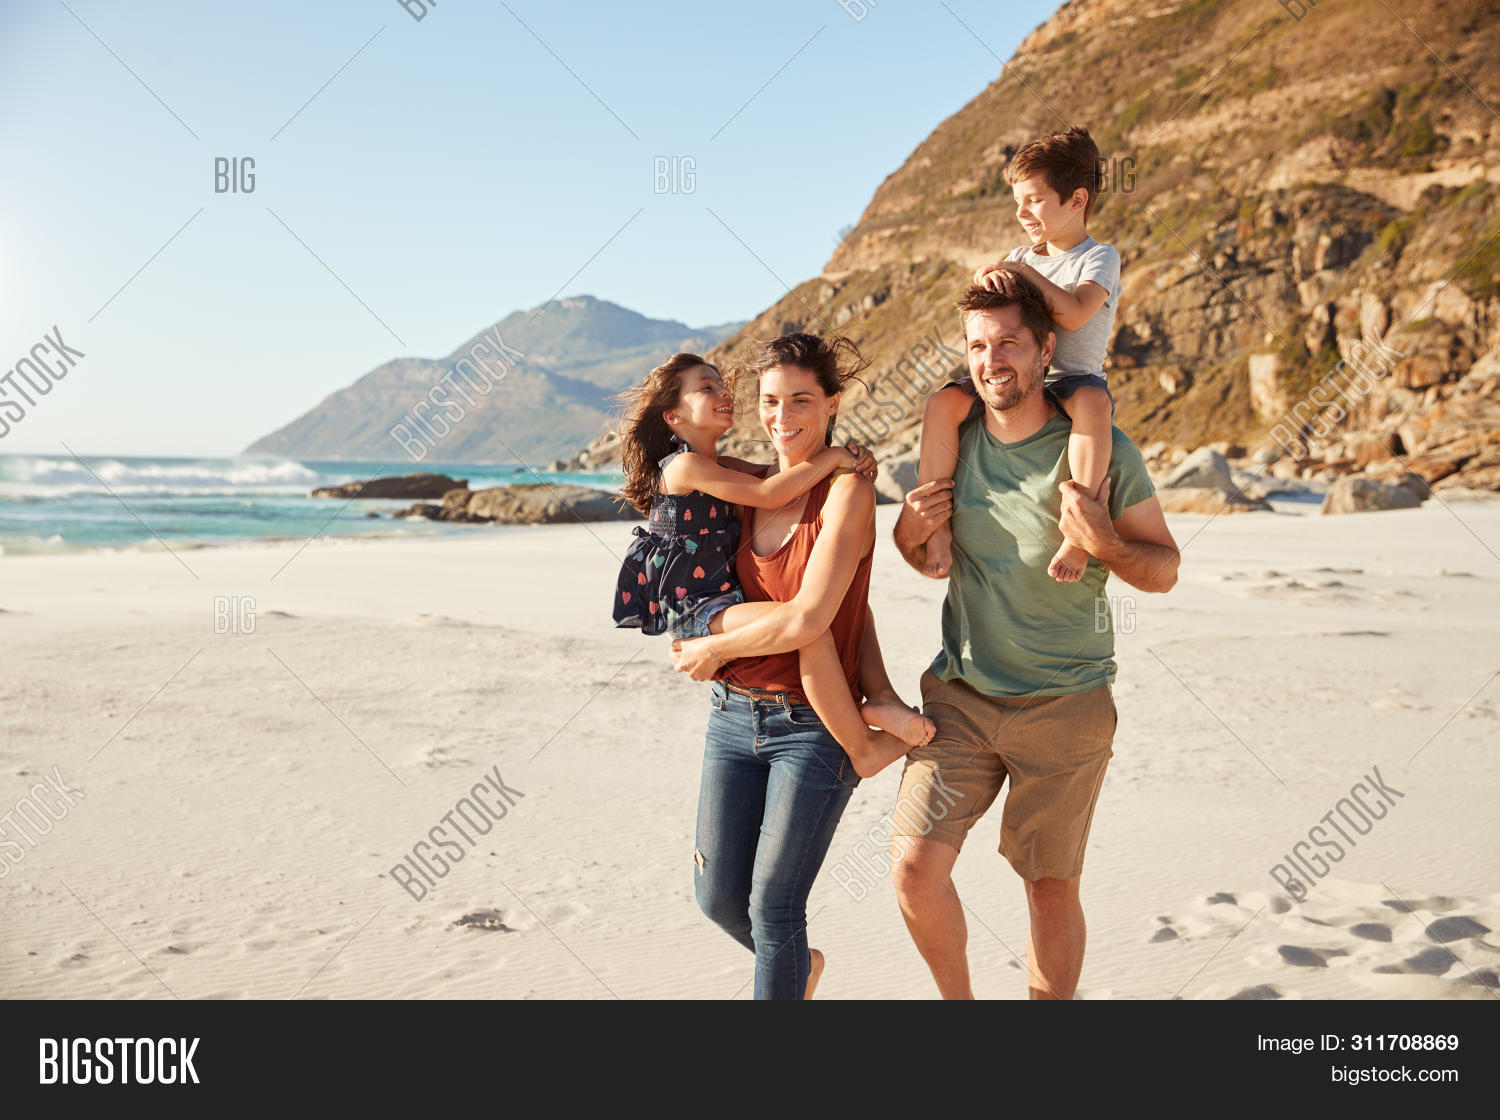 30s,adults,adventure,beach,bonding,boy,carrying child,caucasian,children,confident,copy space,daughter,day,exploring,family,father,four people,free time,freedom,fun,getting away from it all,girl,happy,holiday,horizontal,husband,journey,kids,leisure activity,man,millennial,mother,outdoors,parents,pre-teens,seaside,sitting on shoulders,smiling,son,sunlight,the great outdoors,three quarter length,togetherness,travel,vacation,walking,wife,woman,young adults